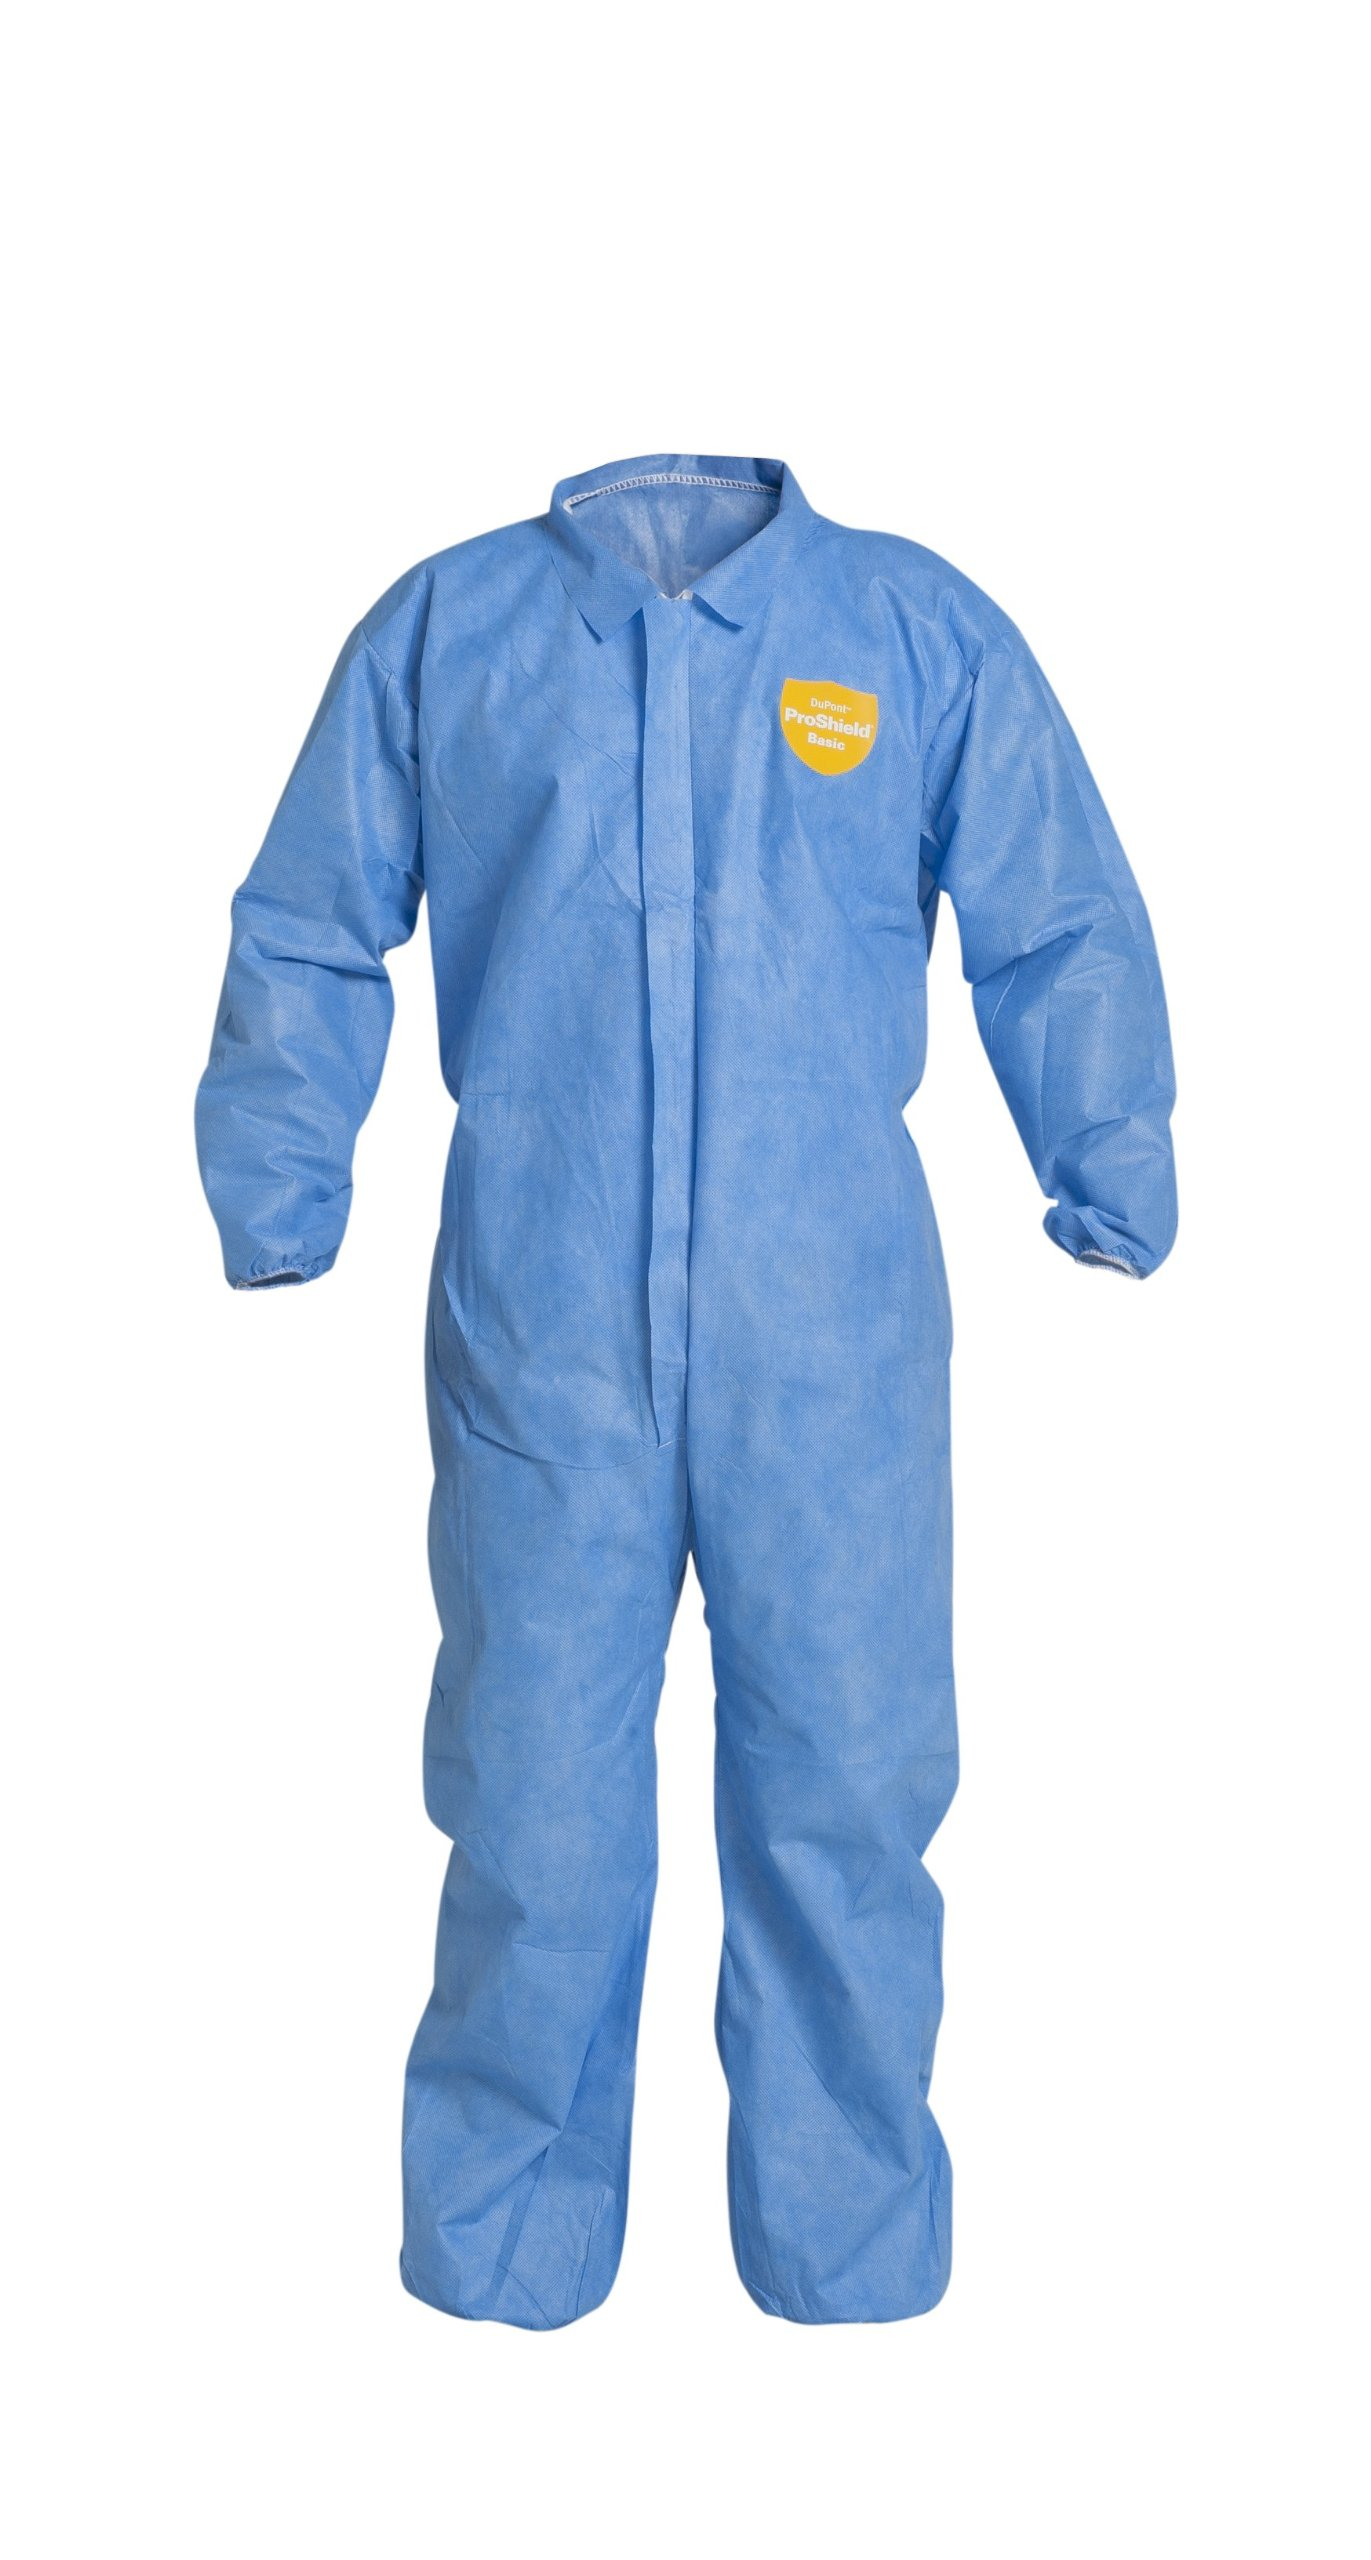 DuPont ProShield 10 PB125S Protective Coverall with Serged Seams, Disposable, Elastic Cuff and Ankles, Large, Blue (Pack of 25)